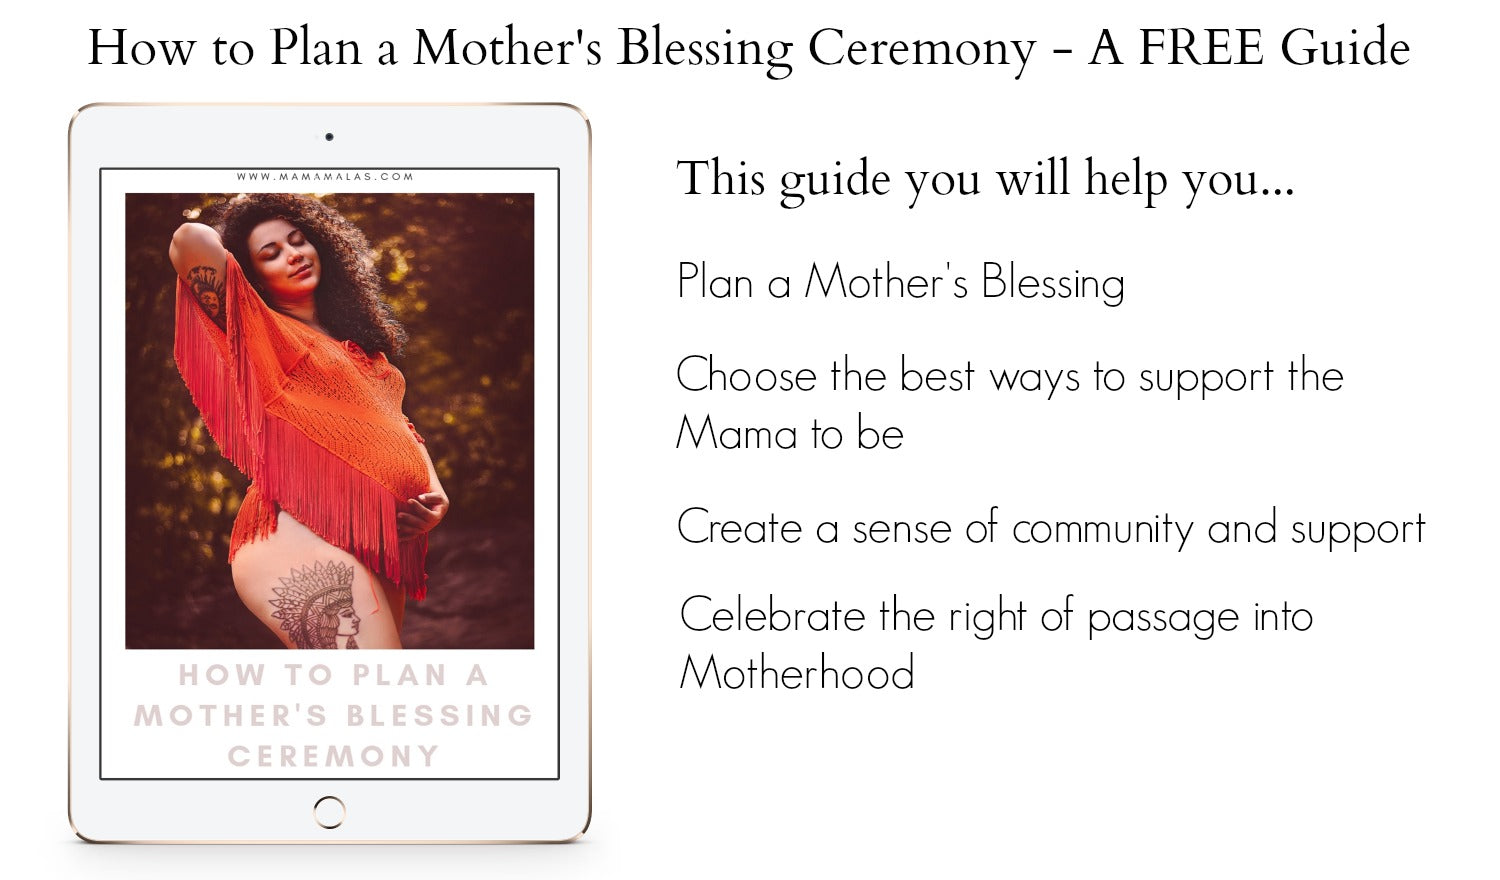 A Mother Blessing Ceremony, is all about the mama and helping her get through her fears, building up her confidence and sharing positive, healing stories. Download our FREE guide to plan a Mother's Blessing that will help her become mentally and physically prepared for not only the birth, but what comes after.